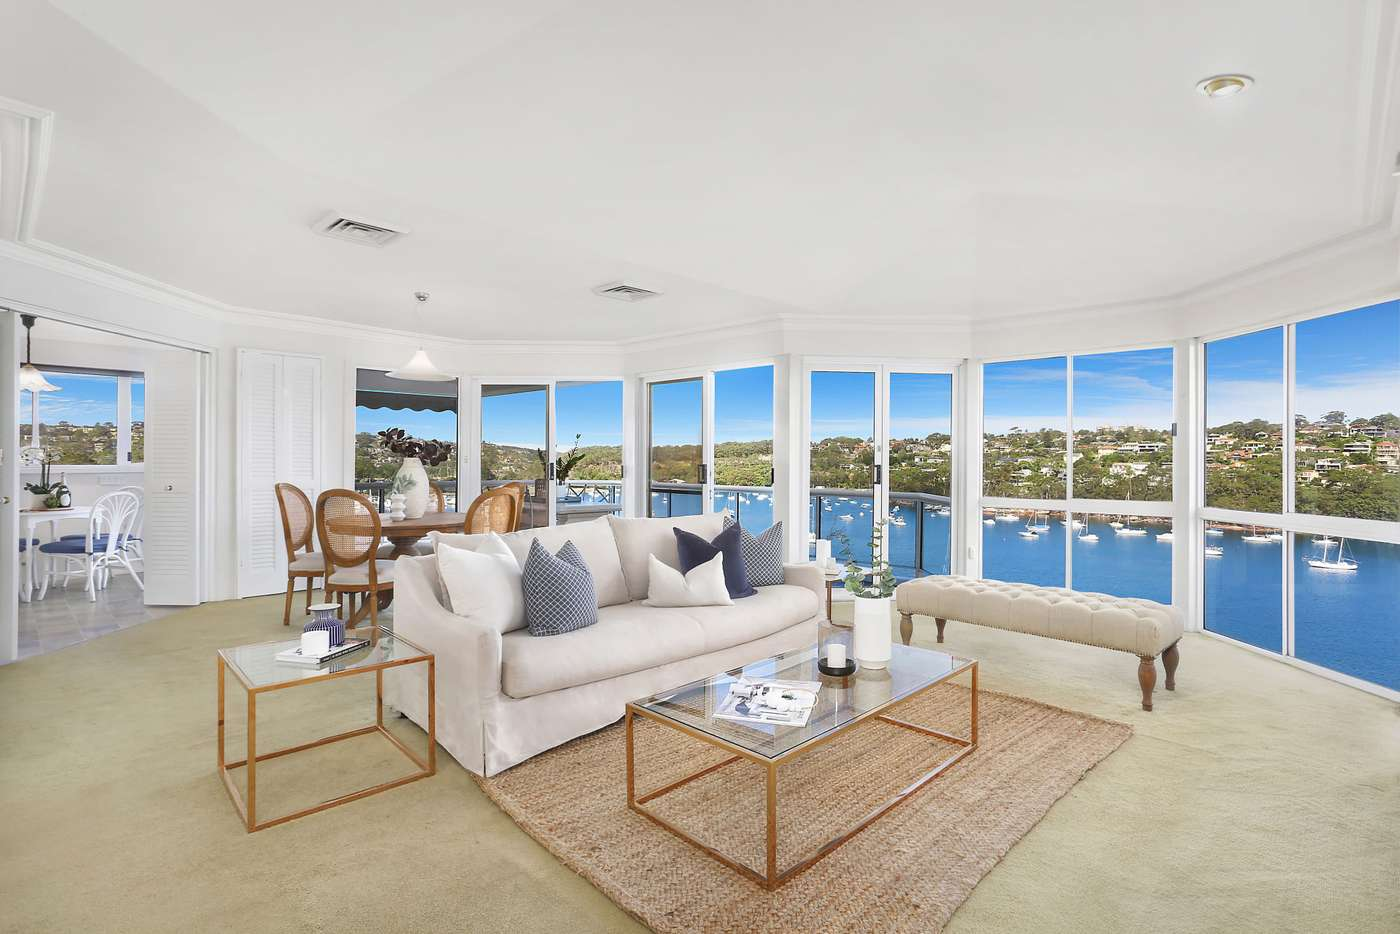 Main view of Homely house listing, 65 Seaforth Crescent, Seaforth NSW 2092